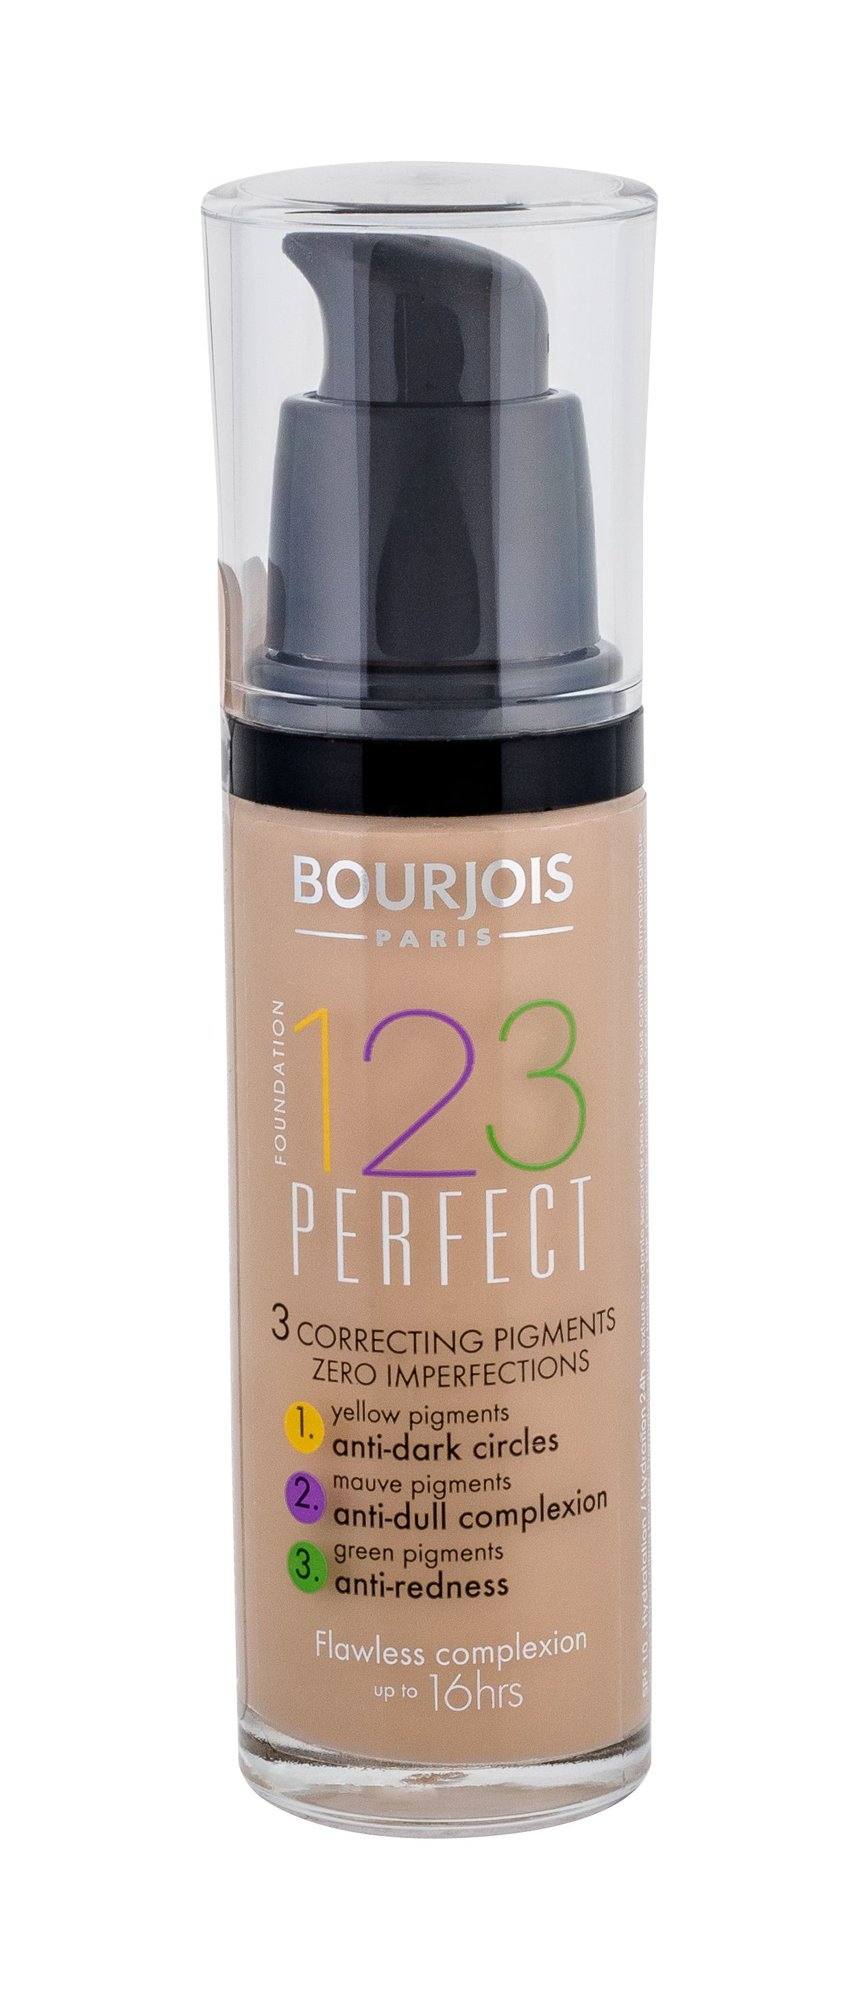 BOURJOIS Paris 123 Perfect Cosmetic 30ml 53 Beige Clair